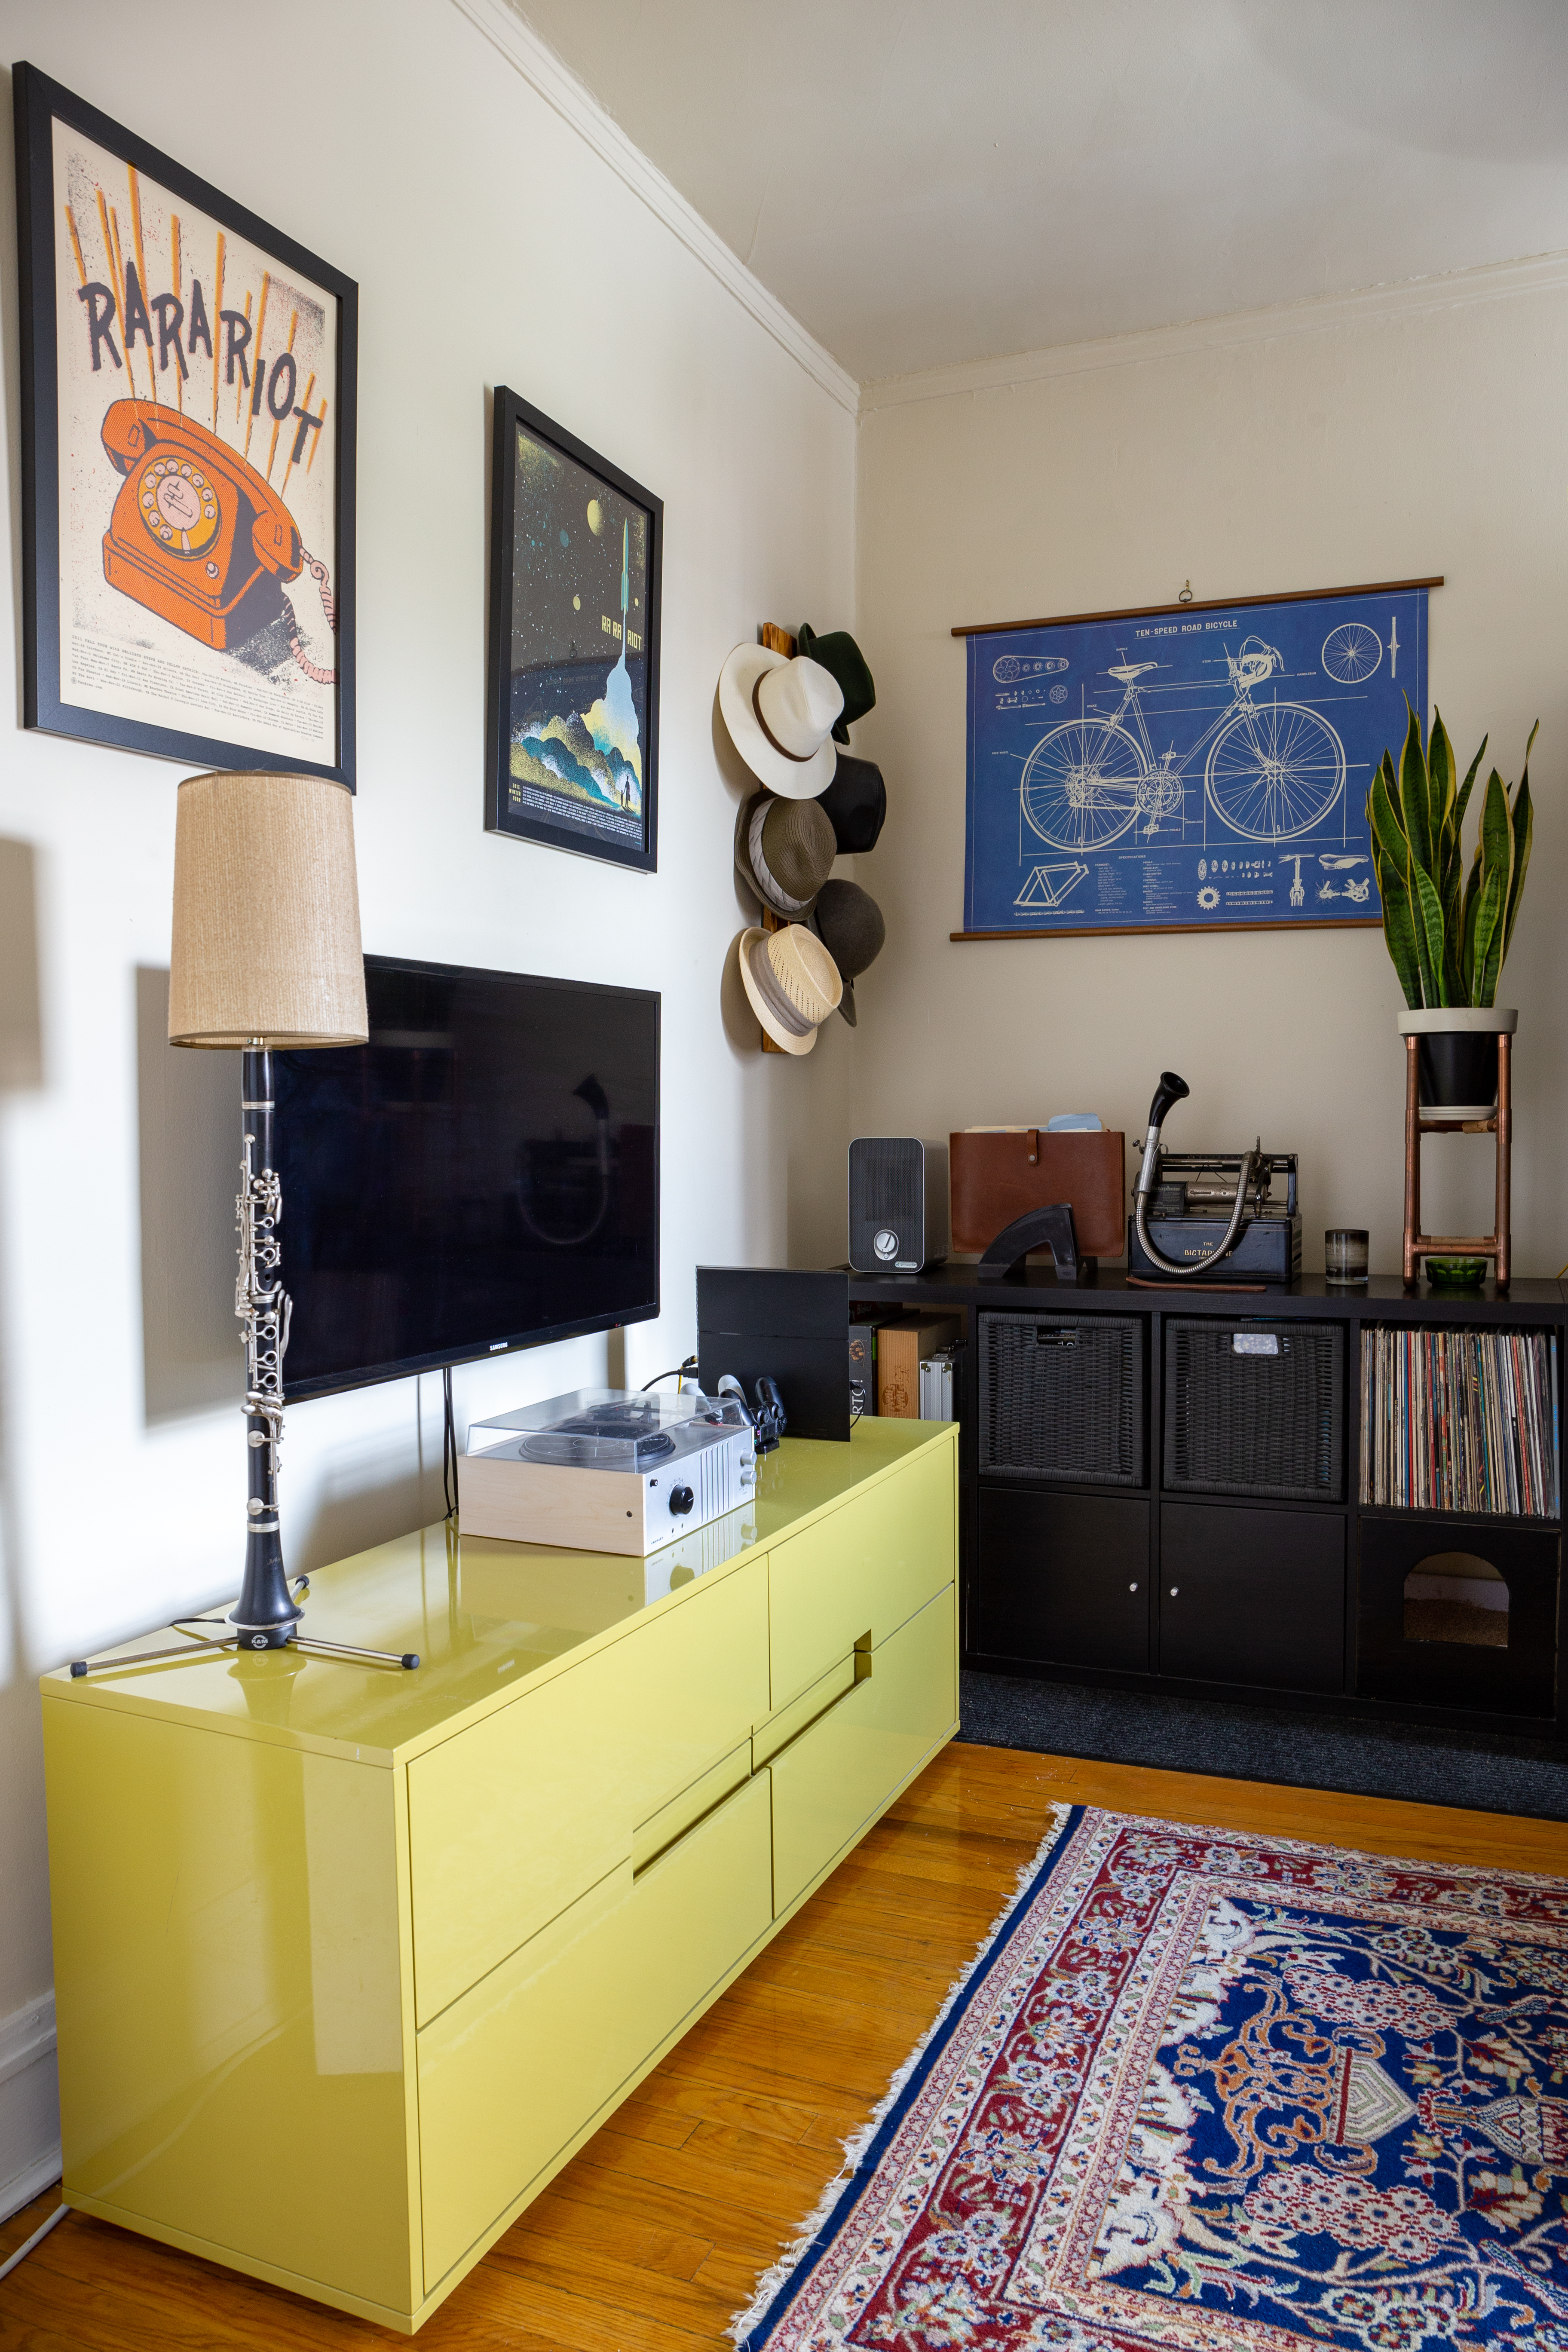 Brick Wall Decor Inspiration in a Chicago Home Tour